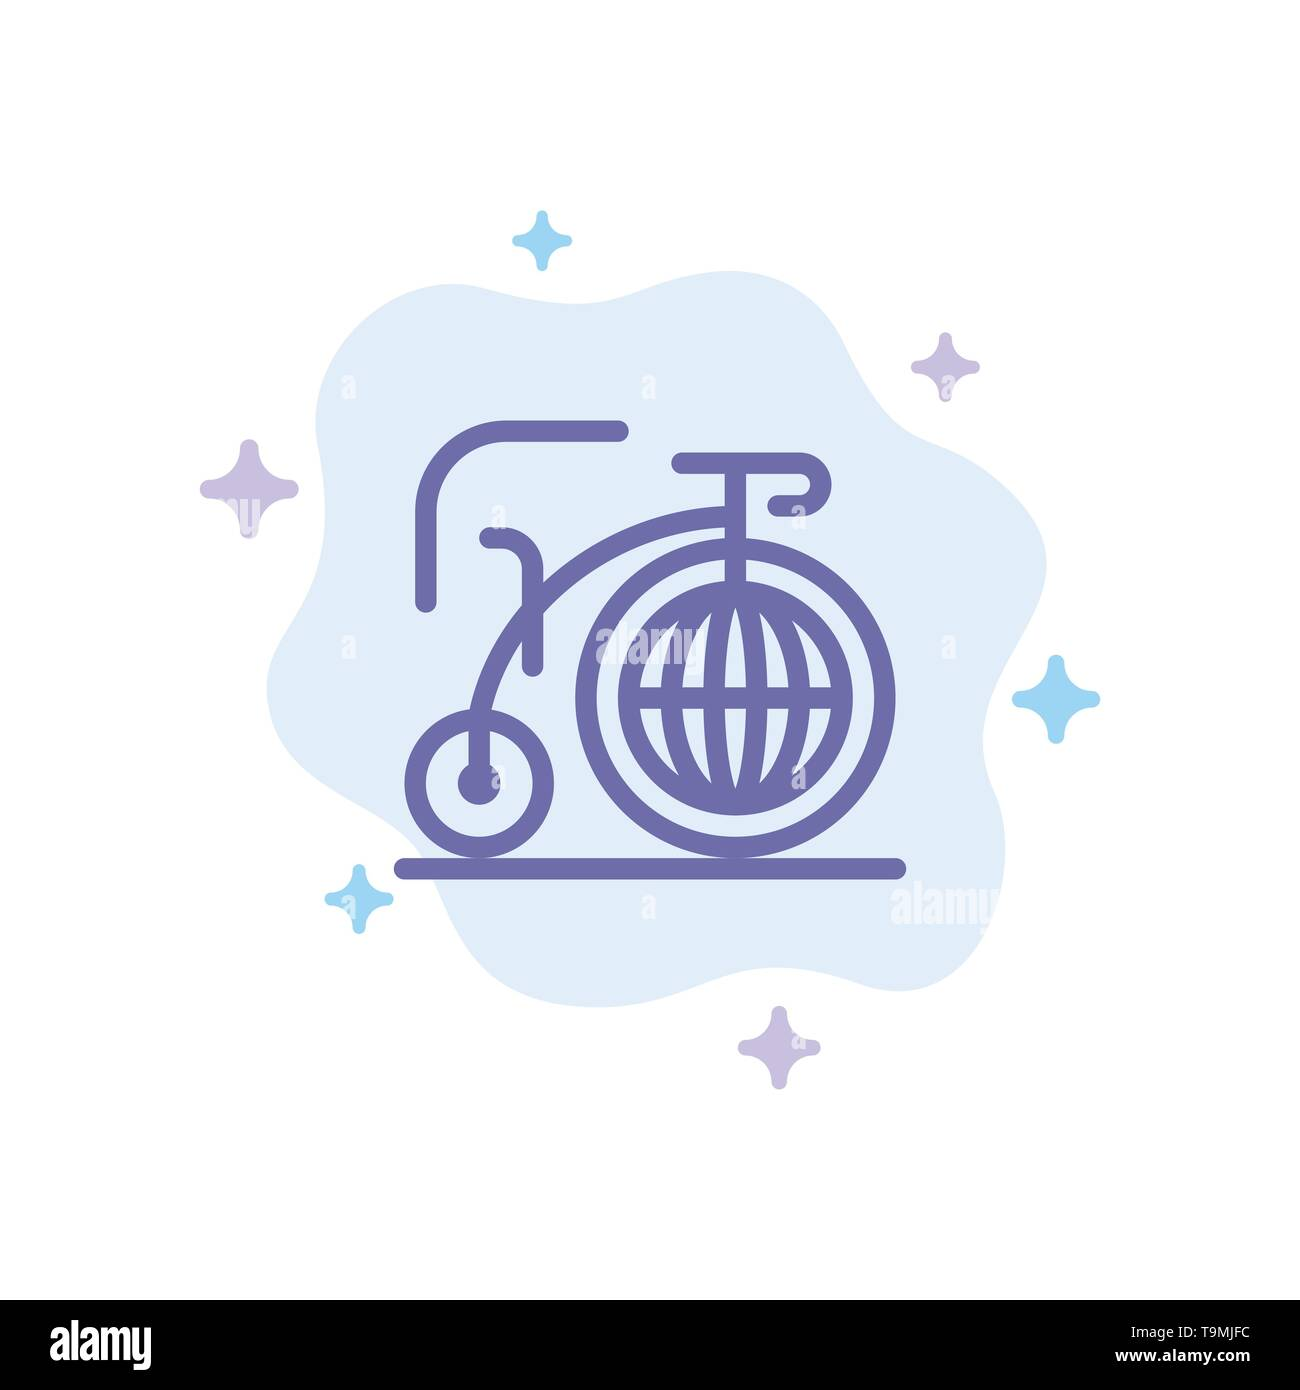 Big, Bike, Dream, Inspiration Blue Icon on Abstract Cloud Background - Stock Image